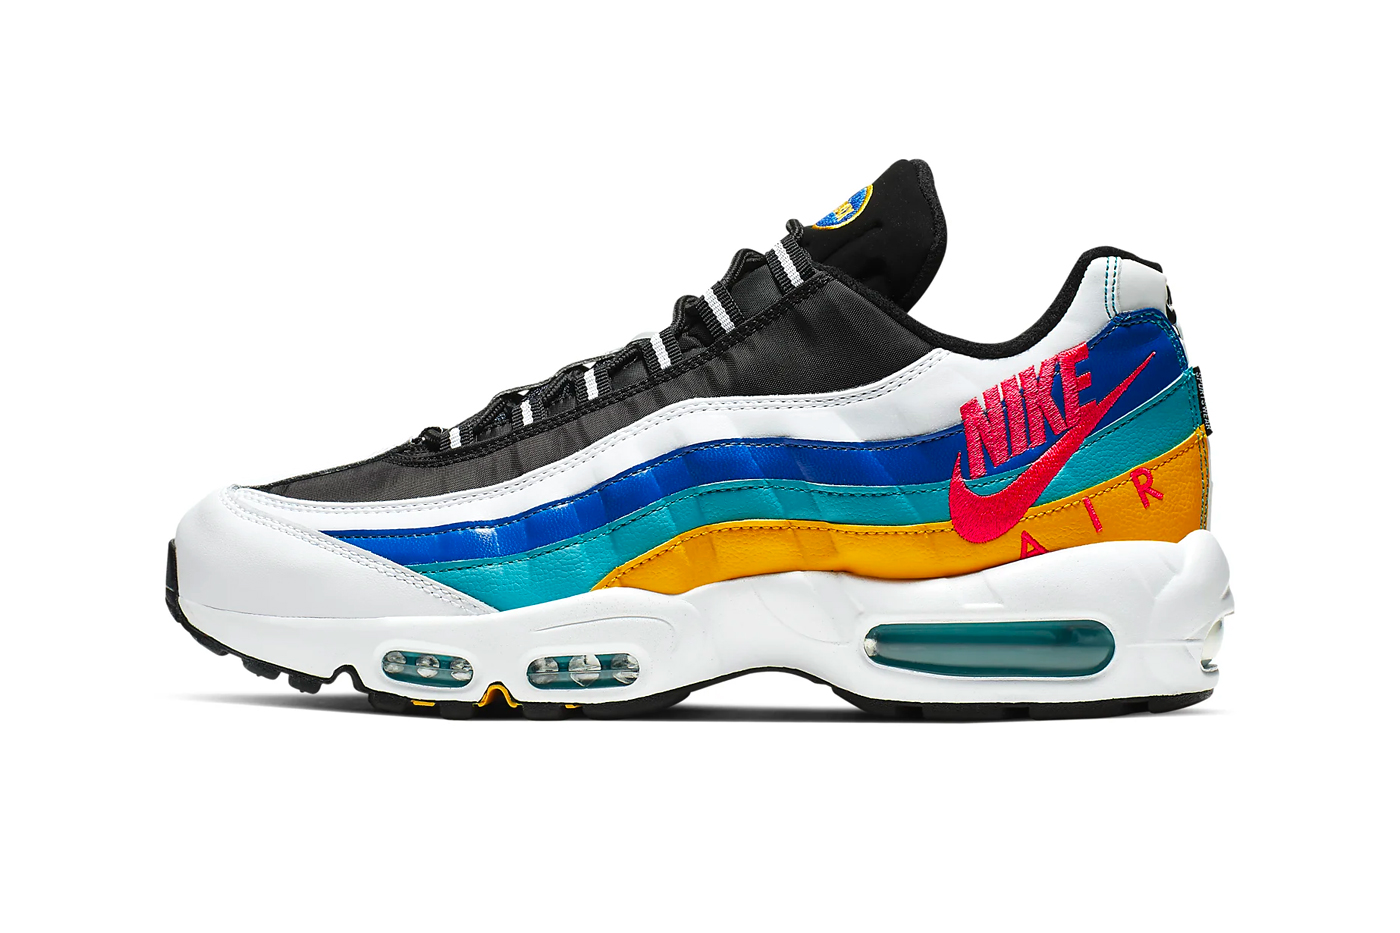 Nike Windbreaker Inspired Air Max 95 Release | HYPEBEAST